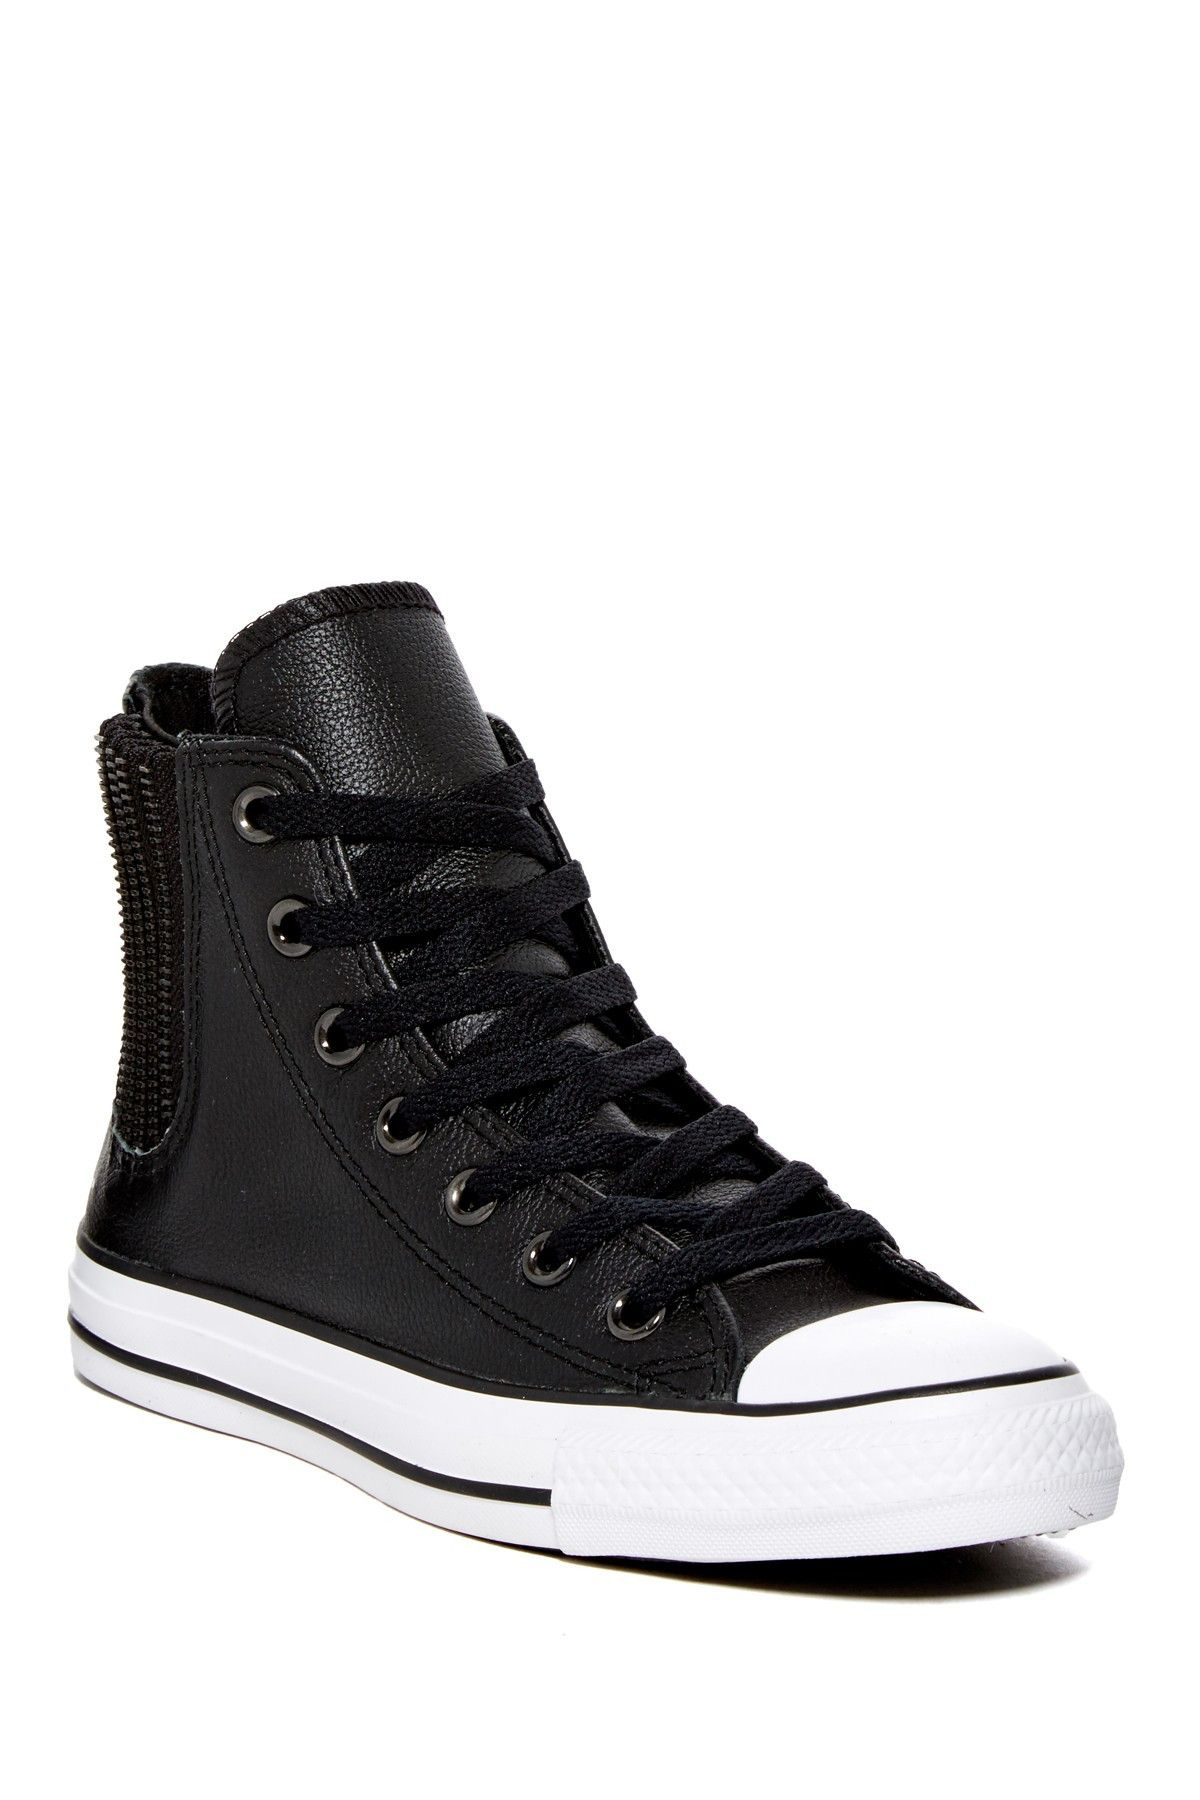 71e1e07e4430 These classic Chuck Taylor All Star Chelsee hi top sneakers are made in  rugged leather with elastic gores finished with trendy tonal zipper trim.